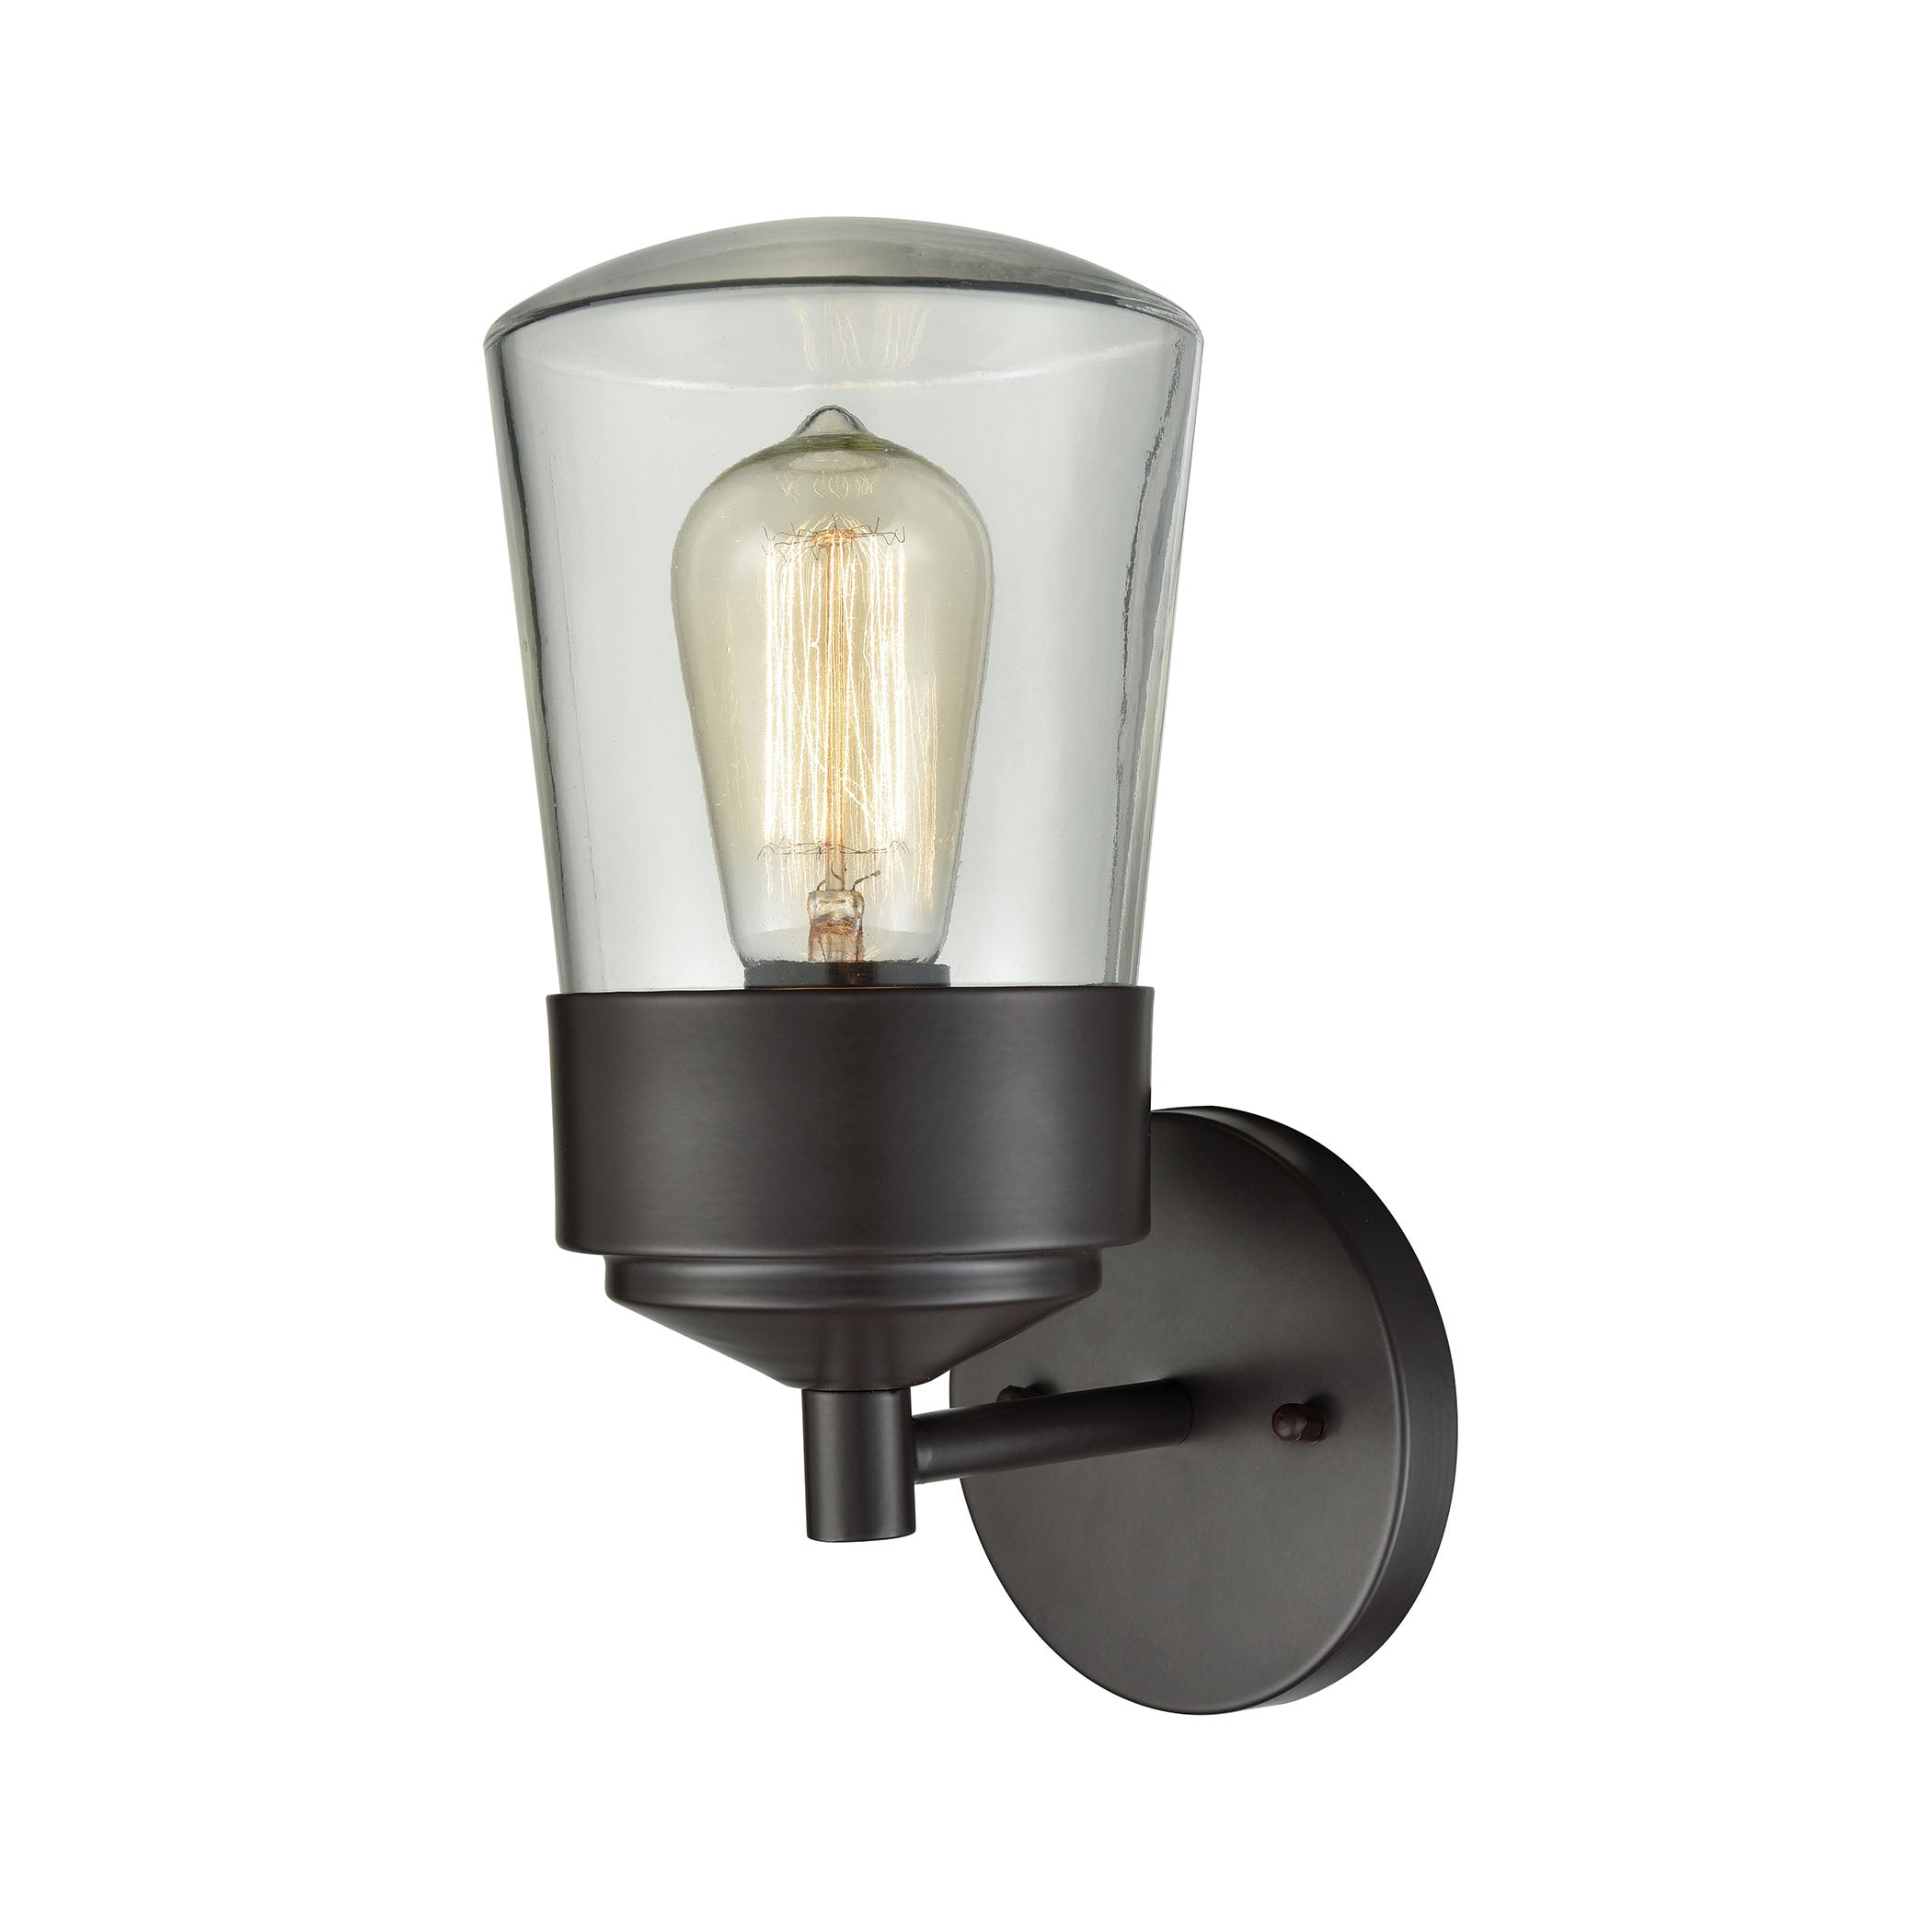 Mullen Gate 1 Light Outdoor Wall Sconce In Oil Rubbed Bronze With Clear Glass